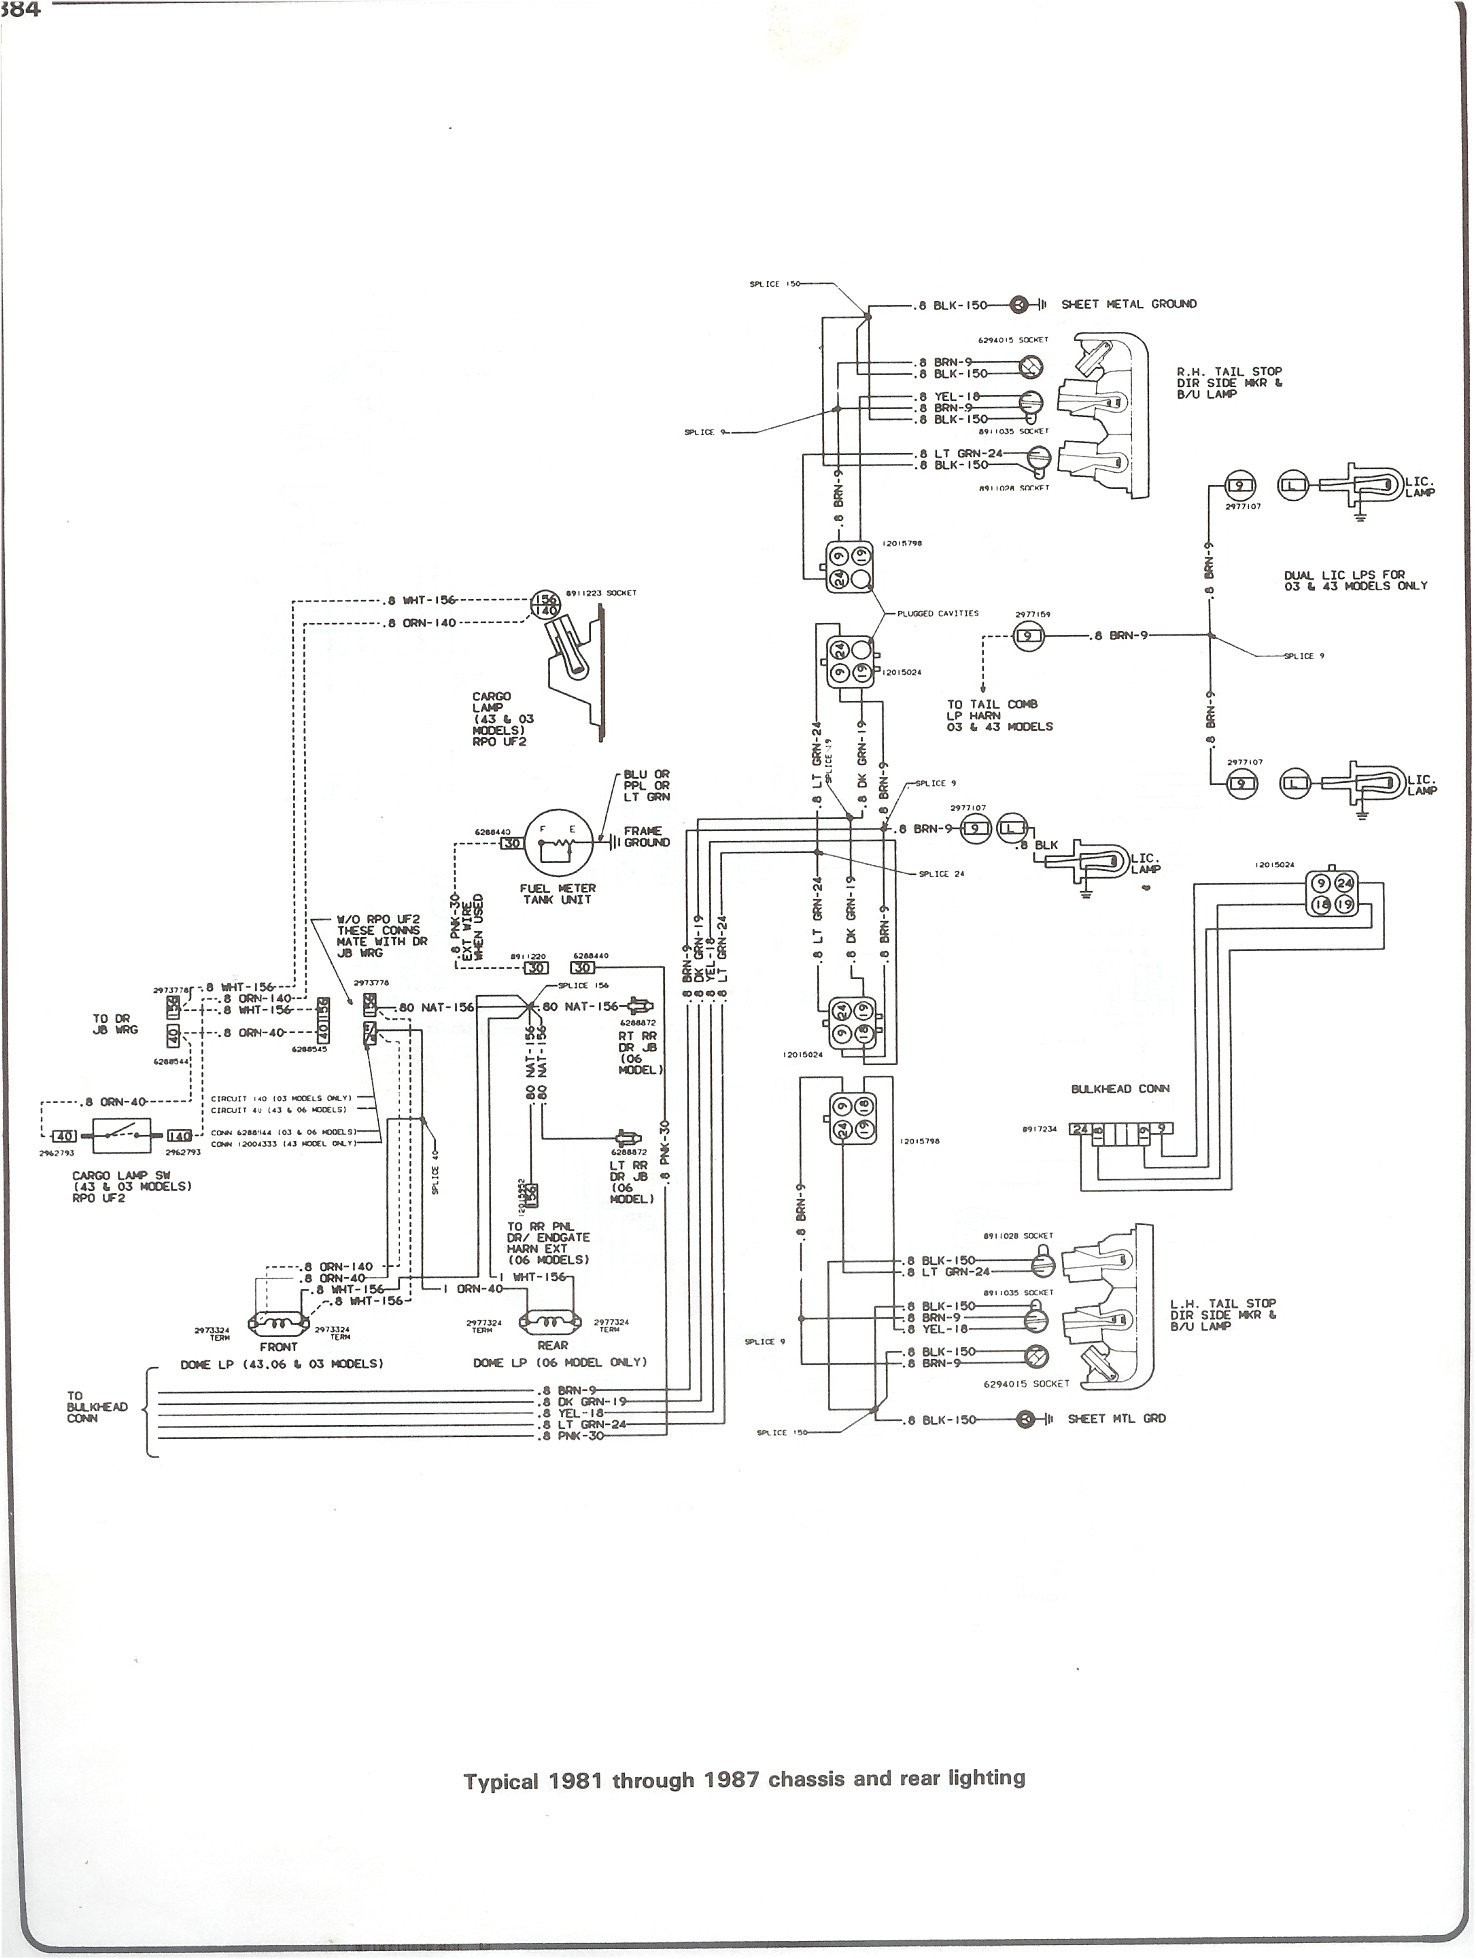 1987 Chevy Truck Vacuum Line Diagram 76 Chevy Truck Wiring Diagram Wiring  Data Of 1987 Chevy